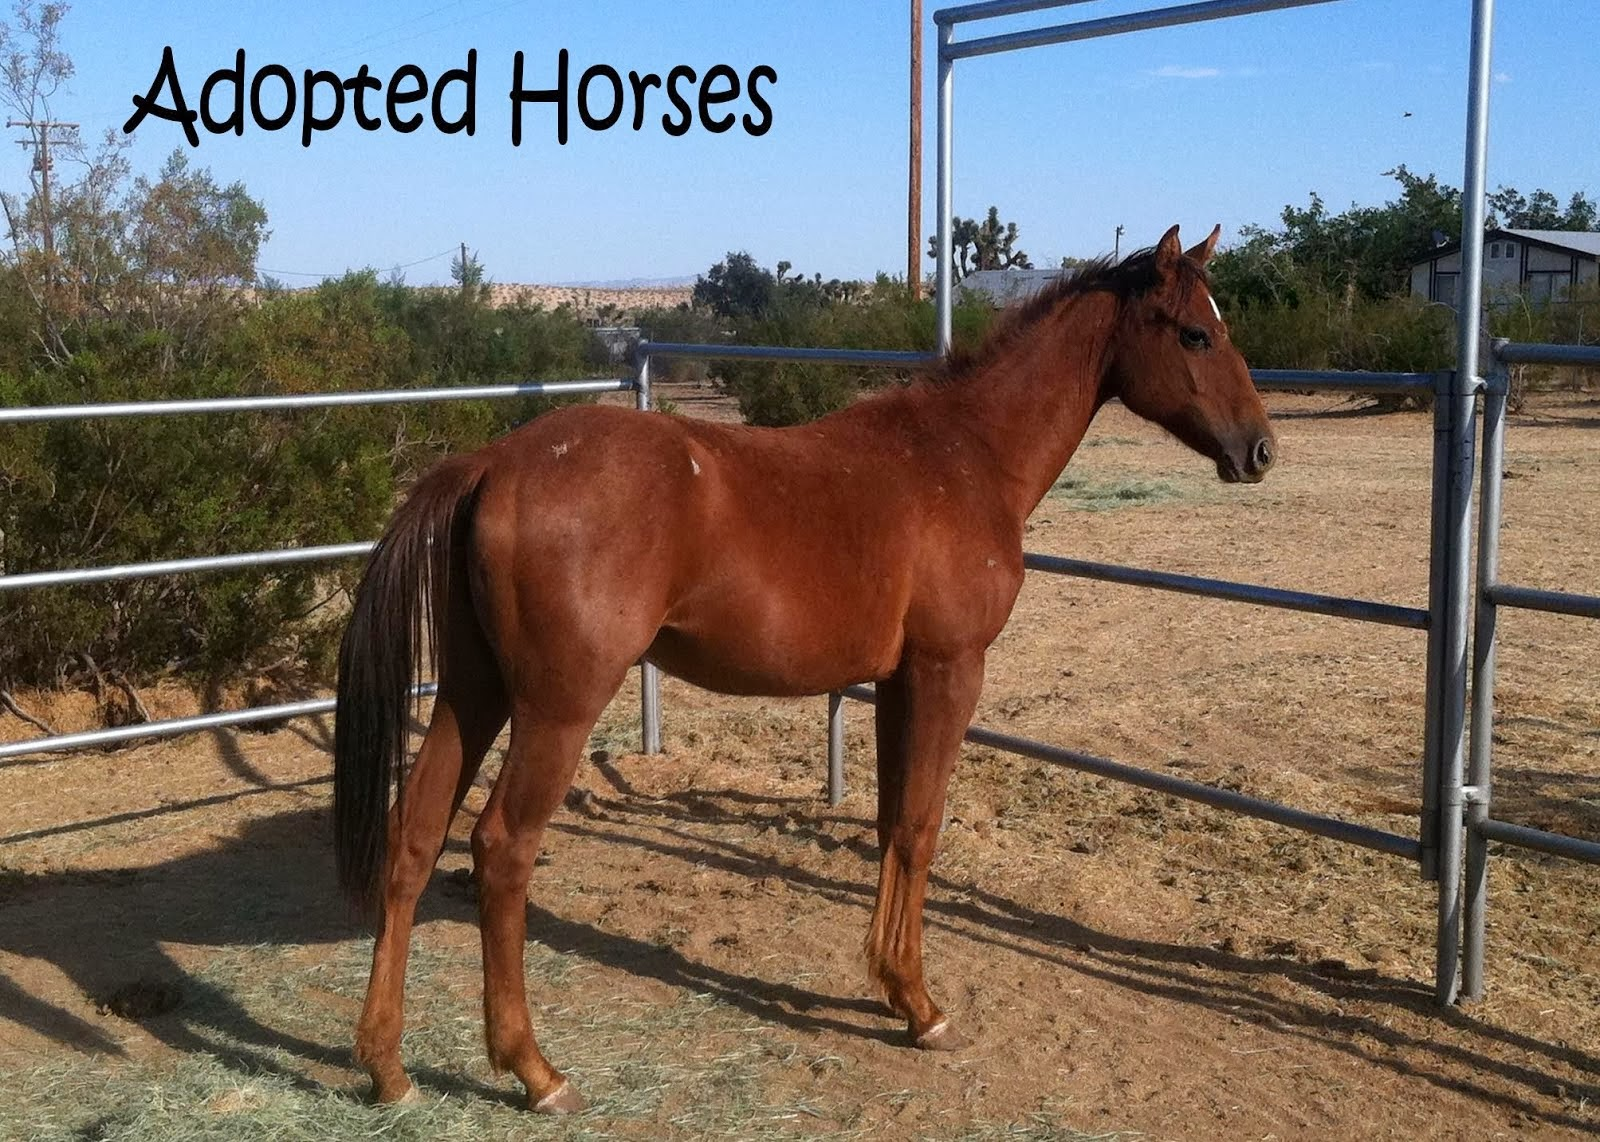 Adopted Horses